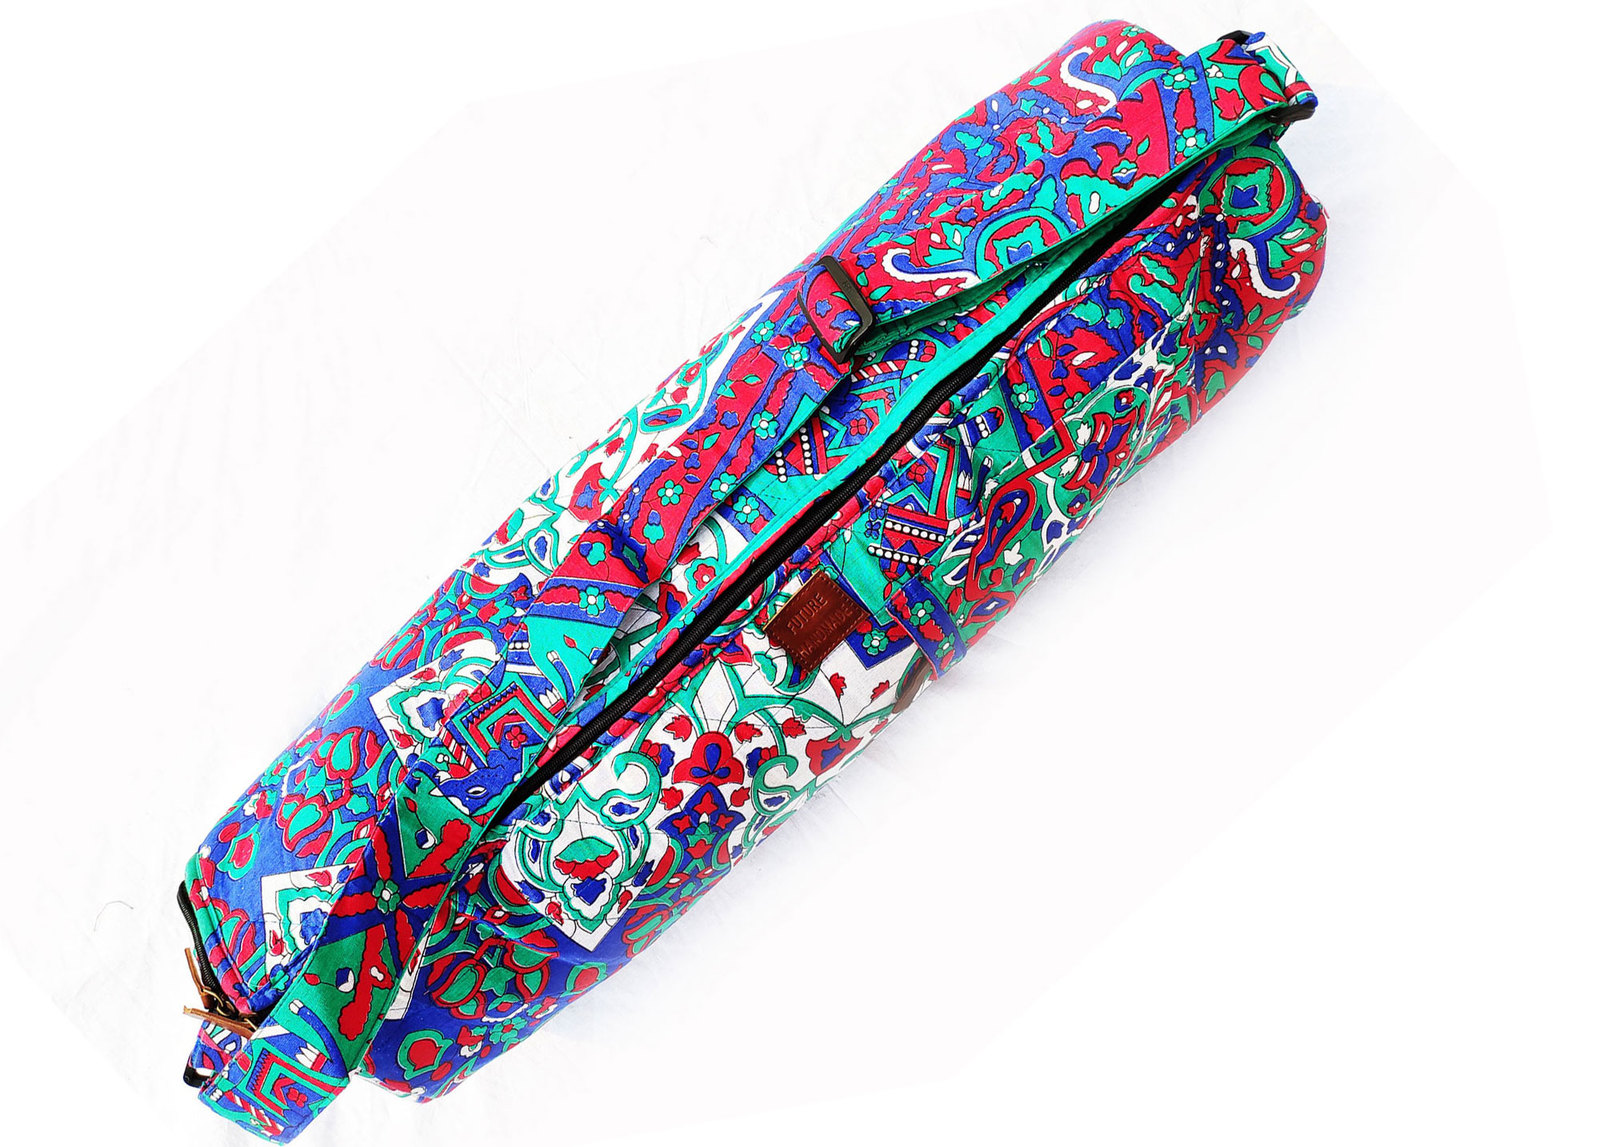 Primary image for Cross Shoulder Body Bag With Zipper Multi Color Printed Mandala Gym Fitness Bag